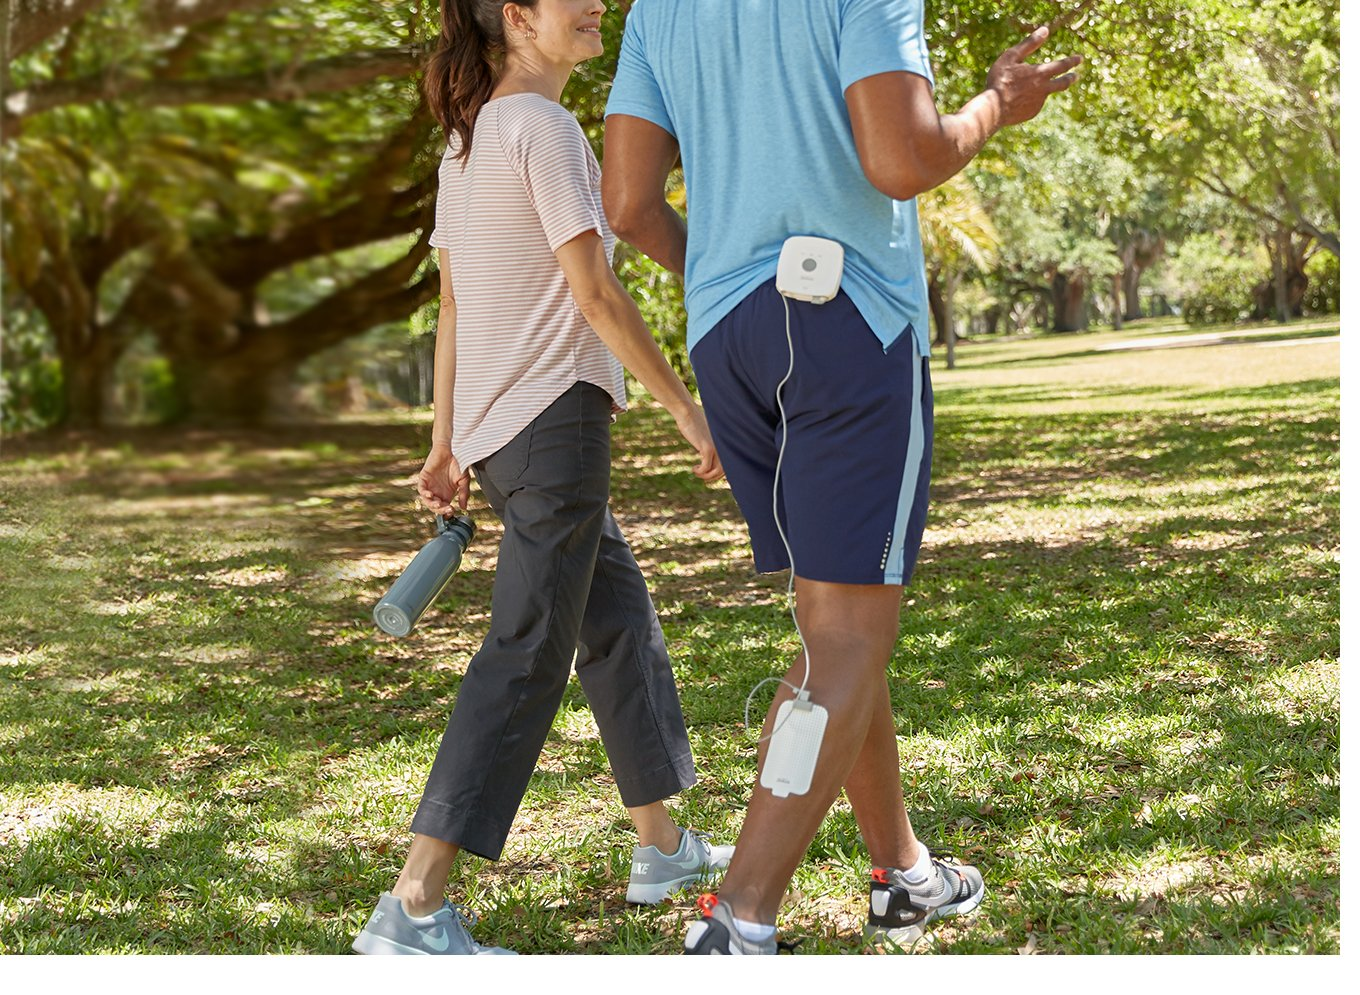 Keep moving while getting heat therapy with Sunbeam's GoHeat Patches.